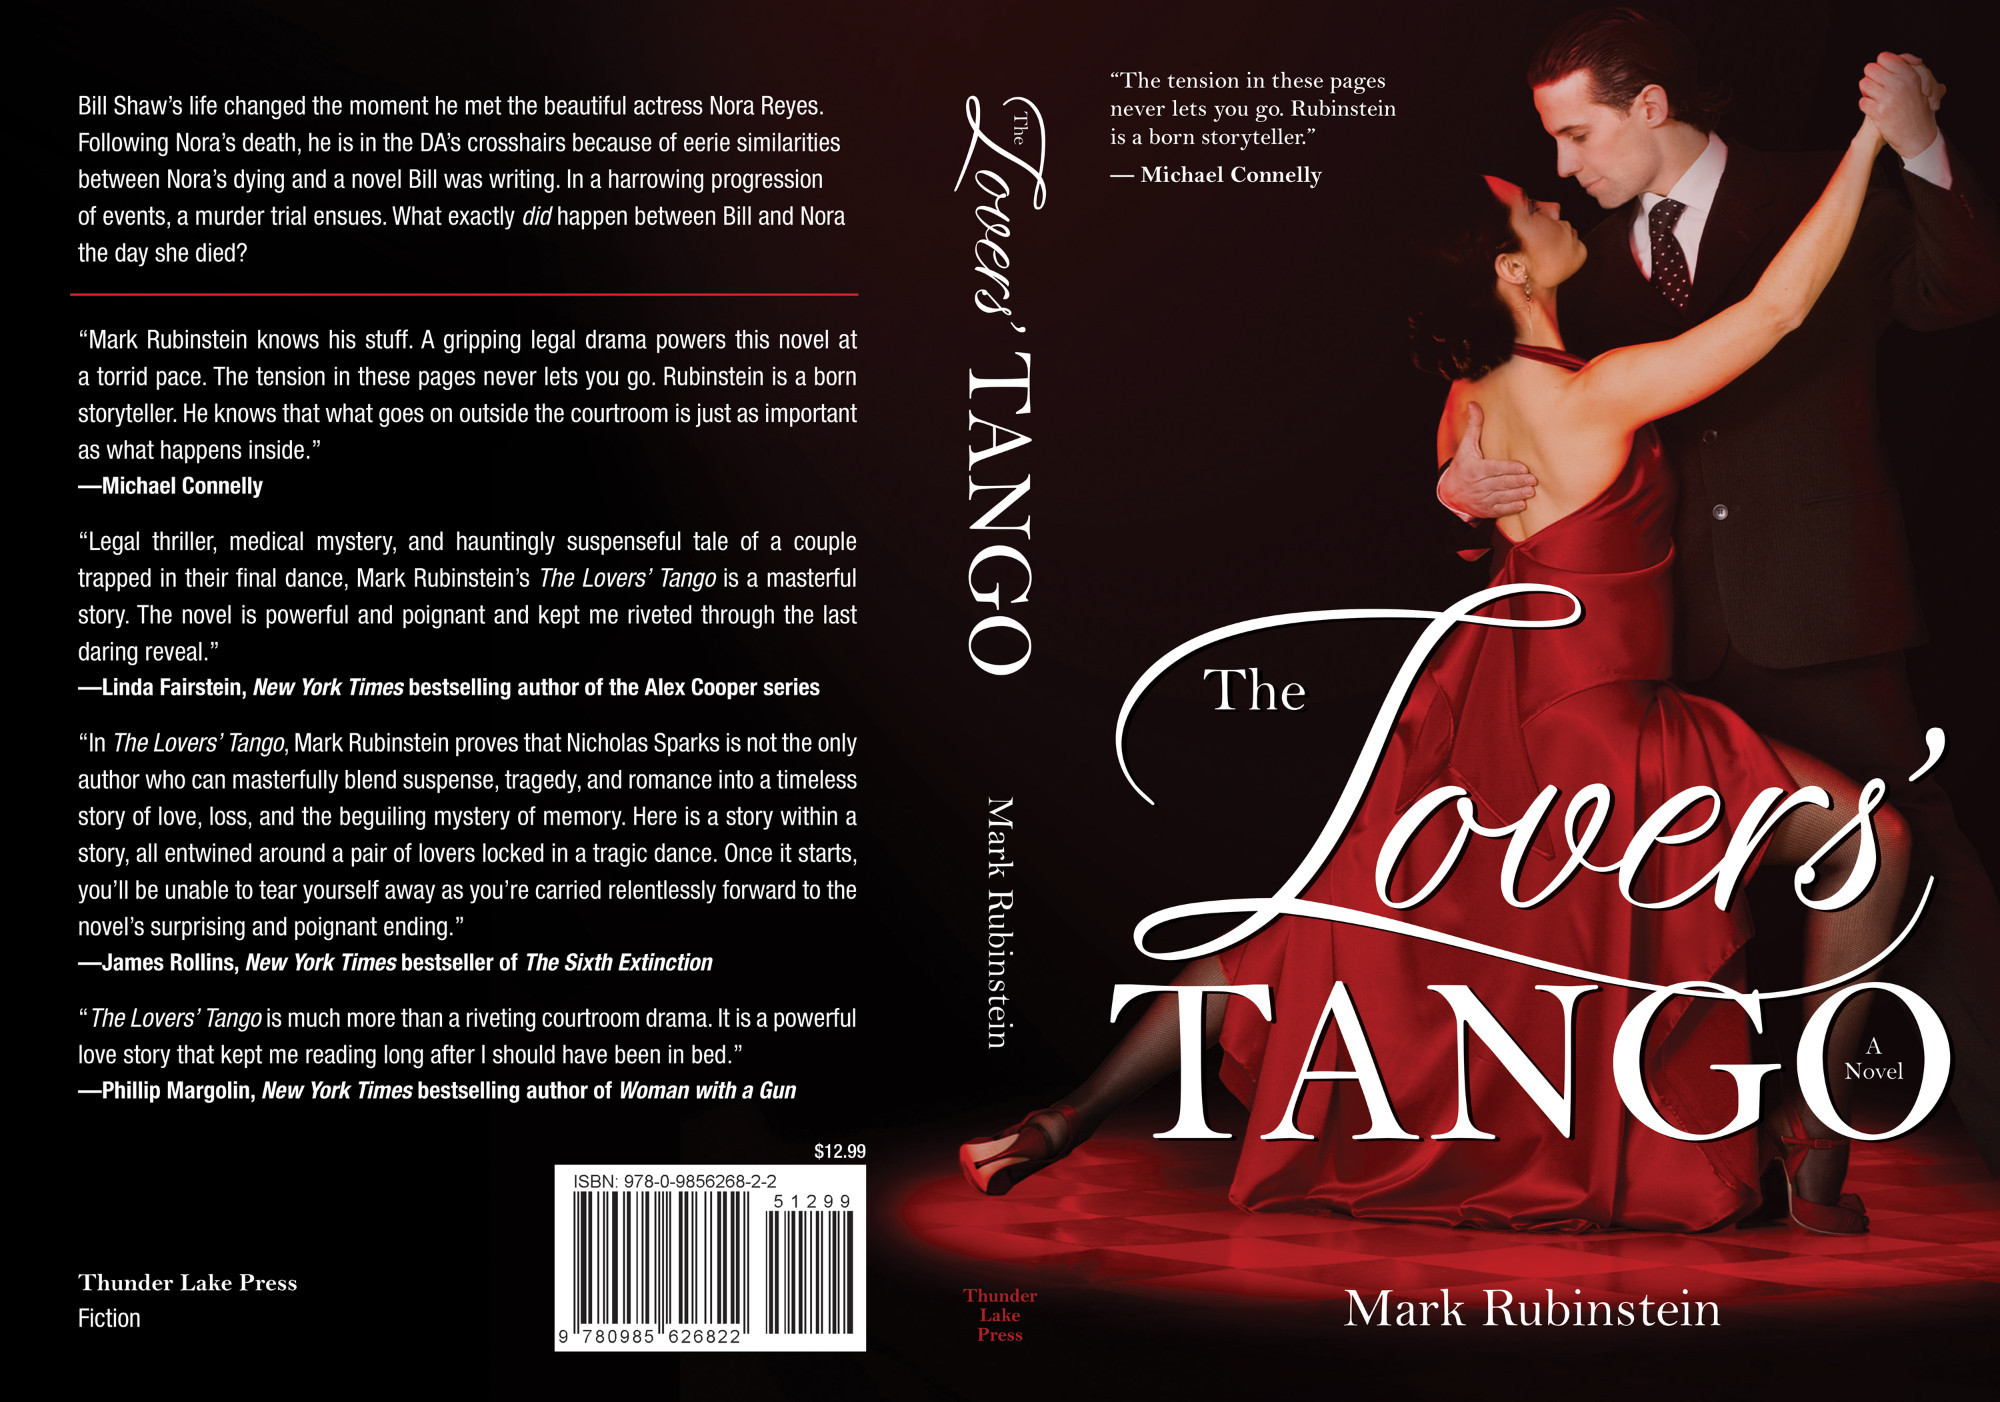 LoversTango_CoverSpread_FINAL_4715_579-148.jpg